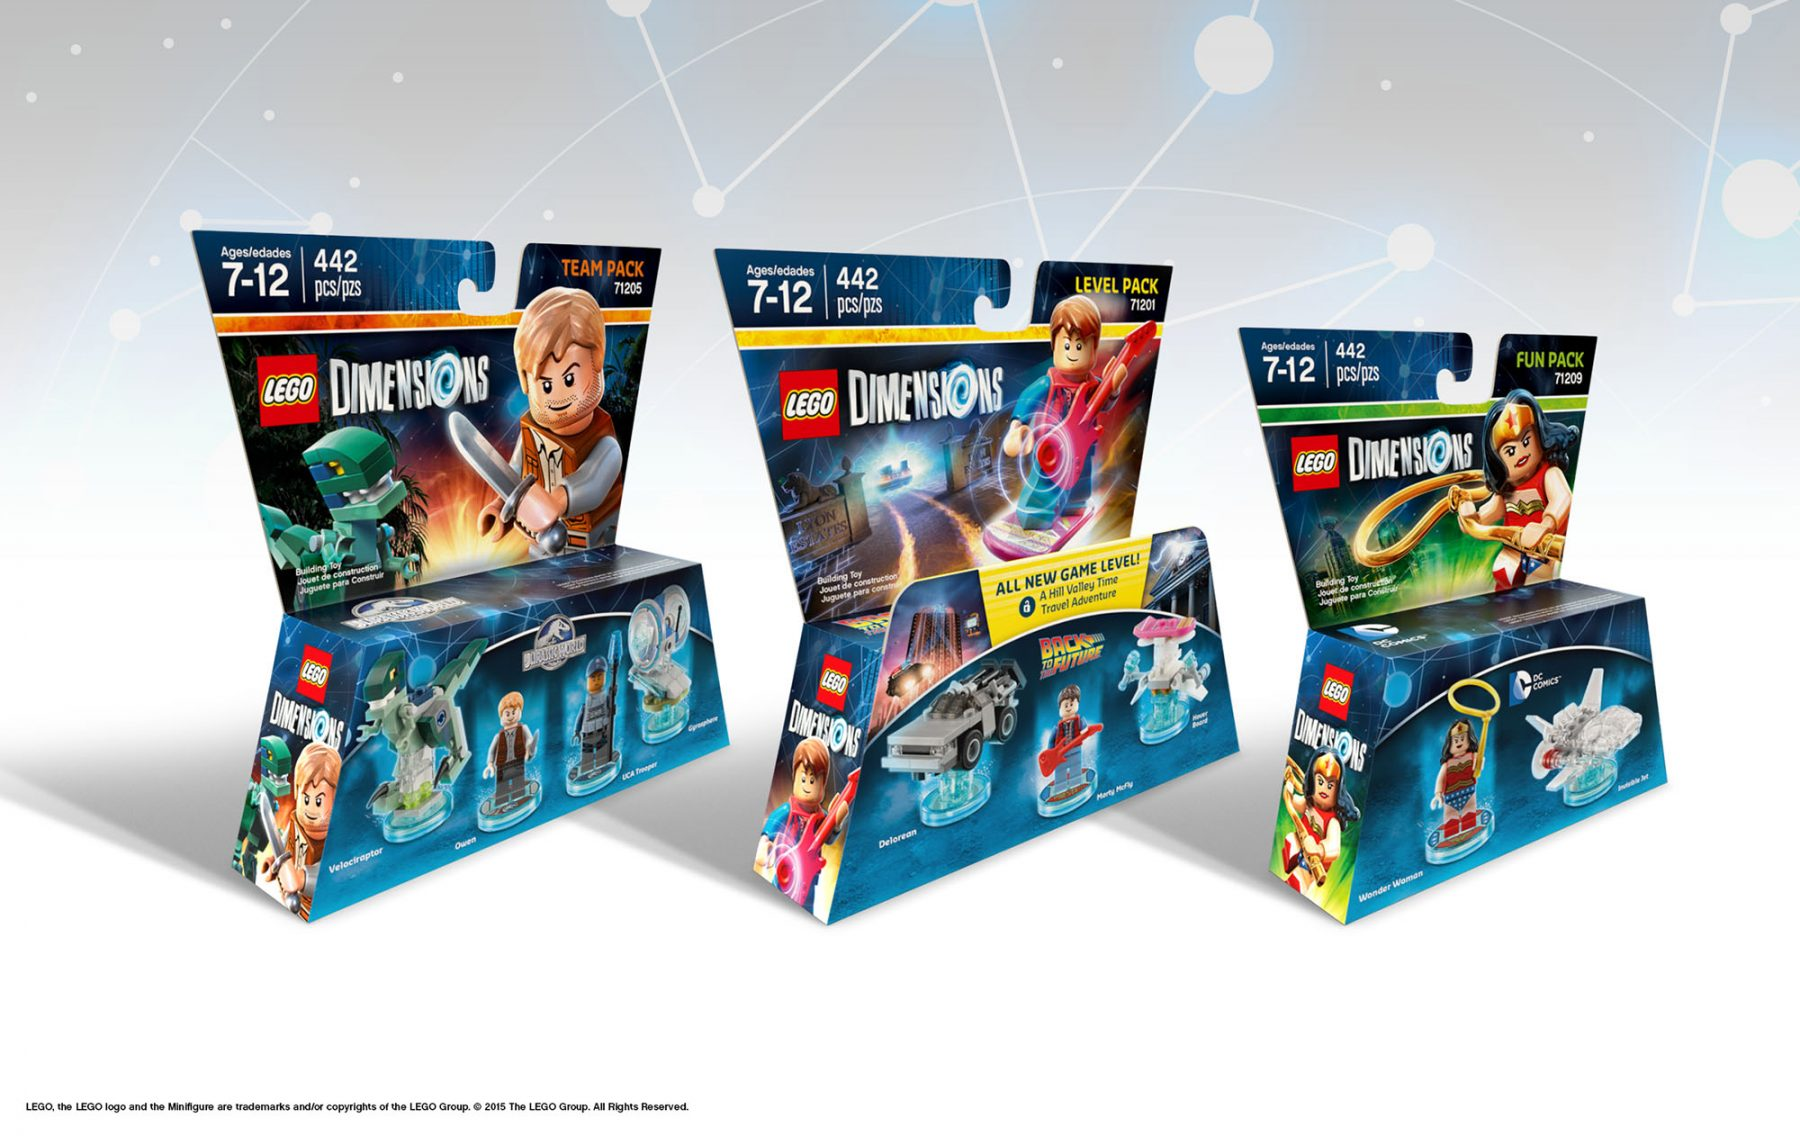 LEGO Dimensions Packaging — Design: MS, Leanne Pagano, Krista Kuehn / Illustration: Hubris / Photo: Atwater